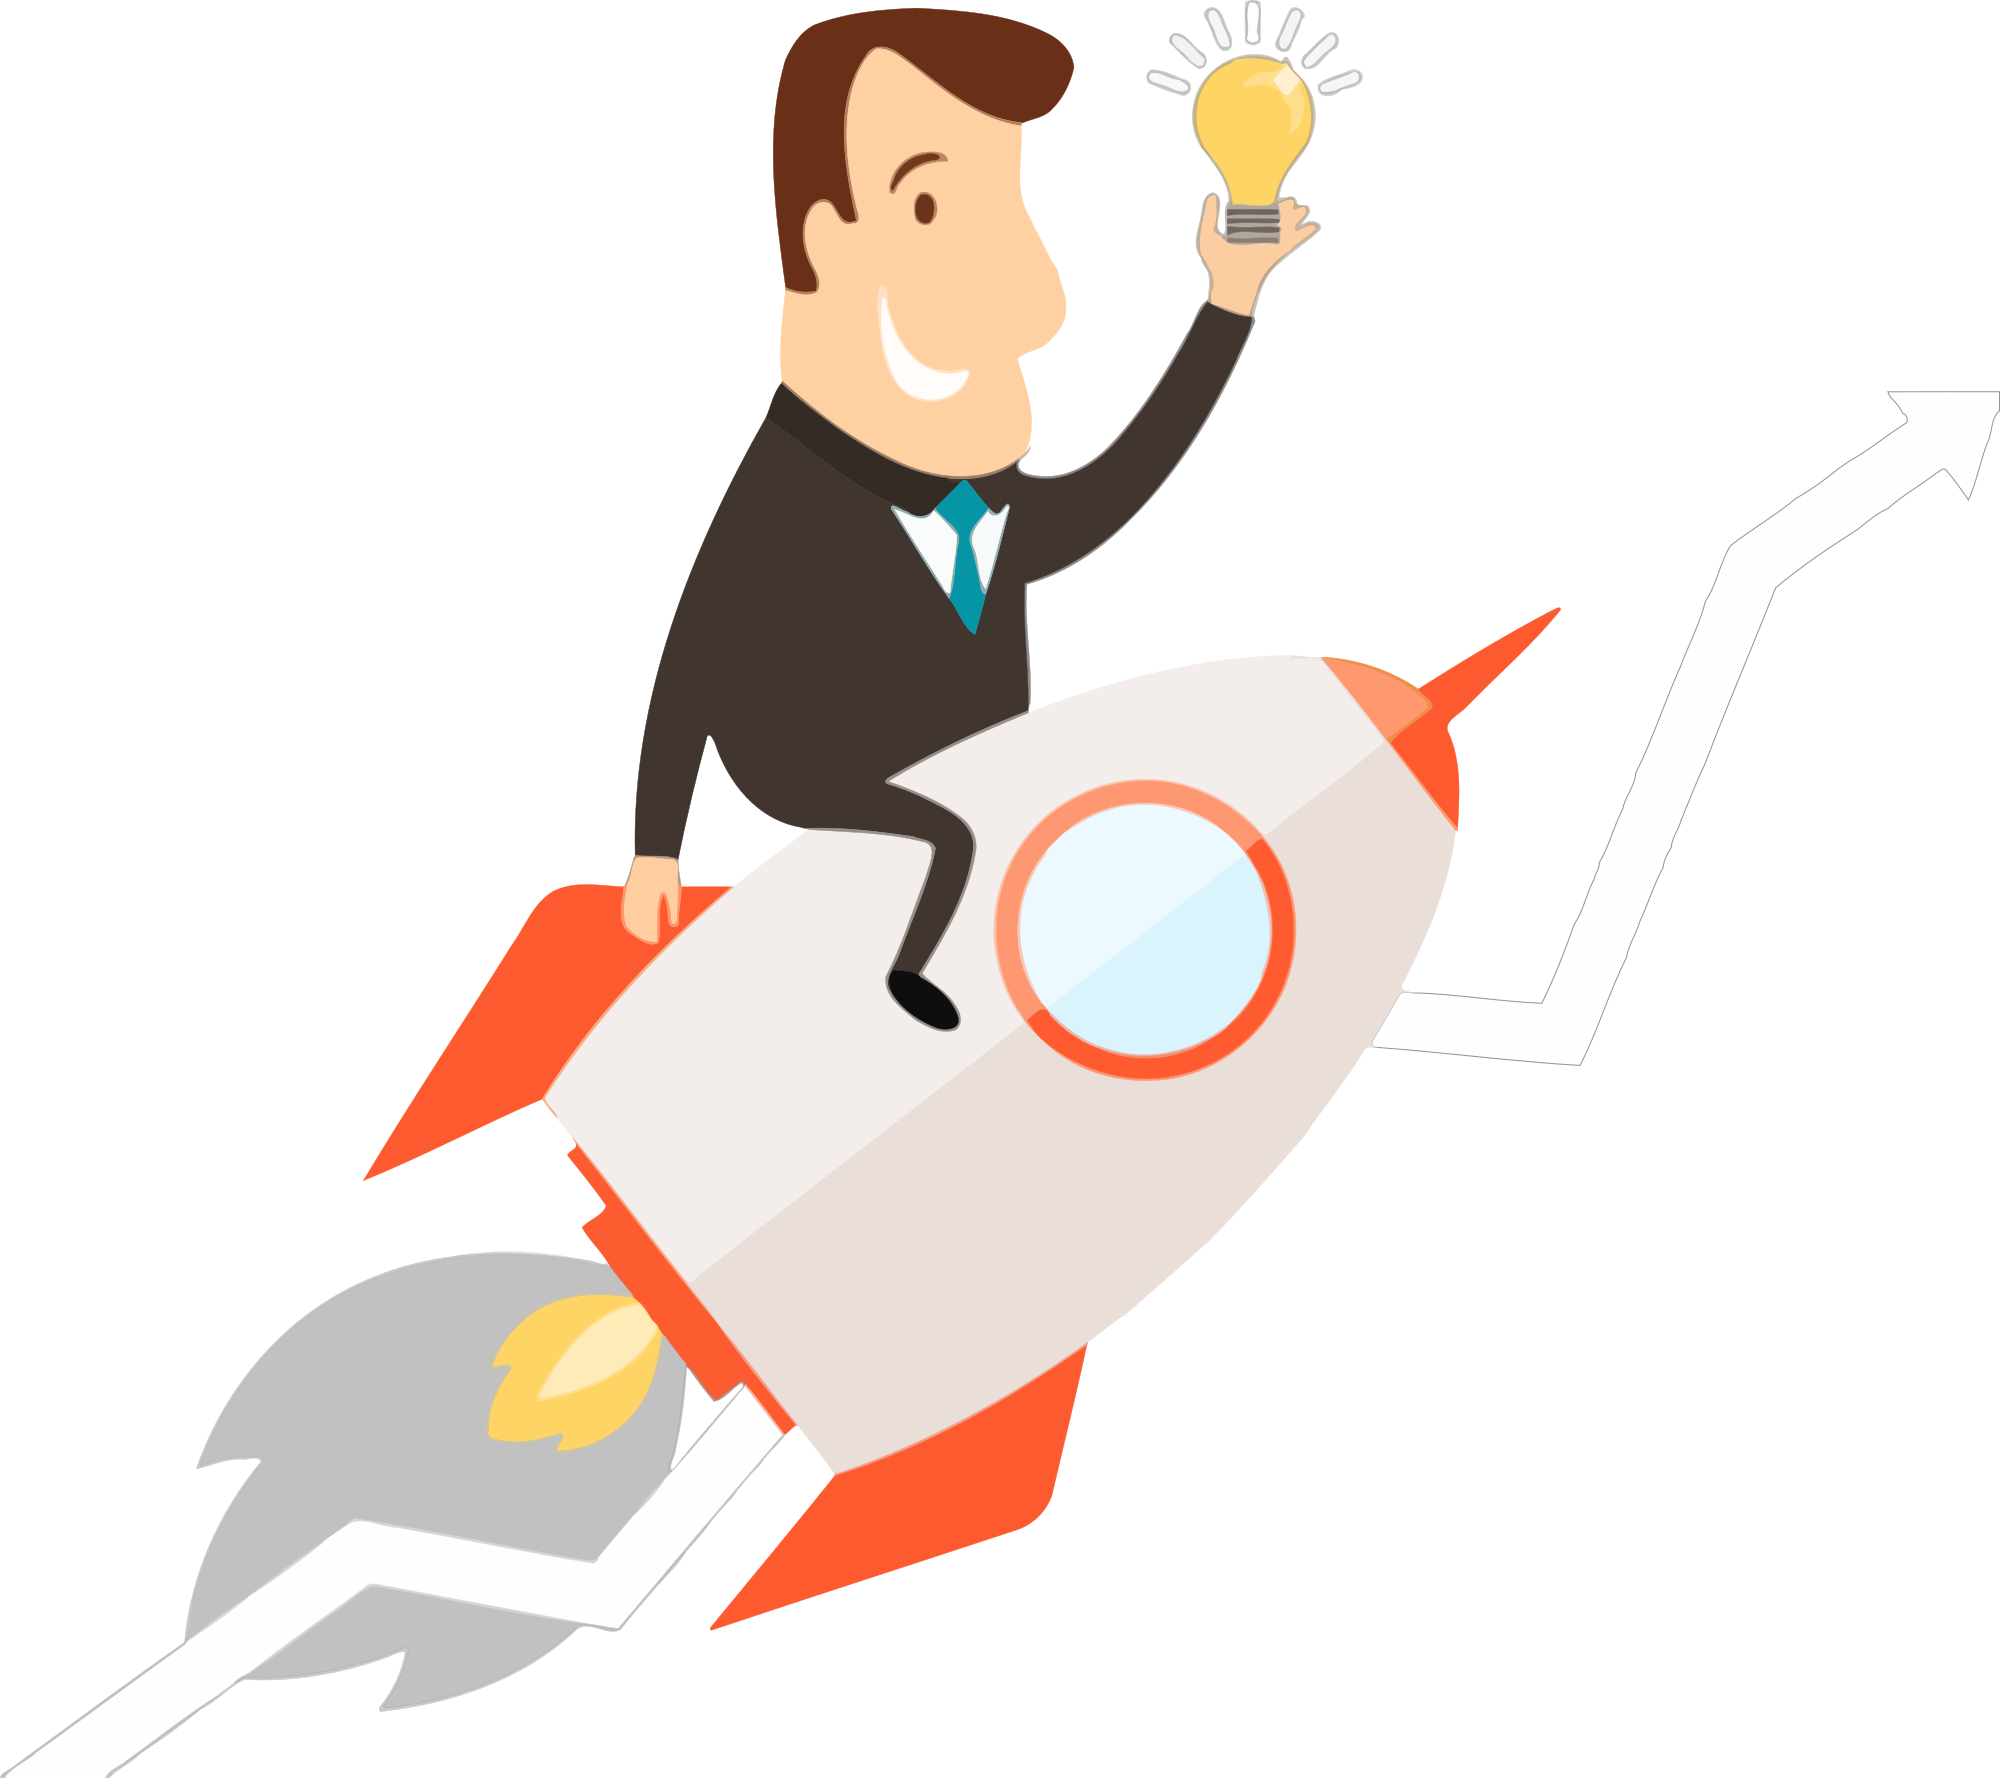 Space rocket clip art image search results clipart 3